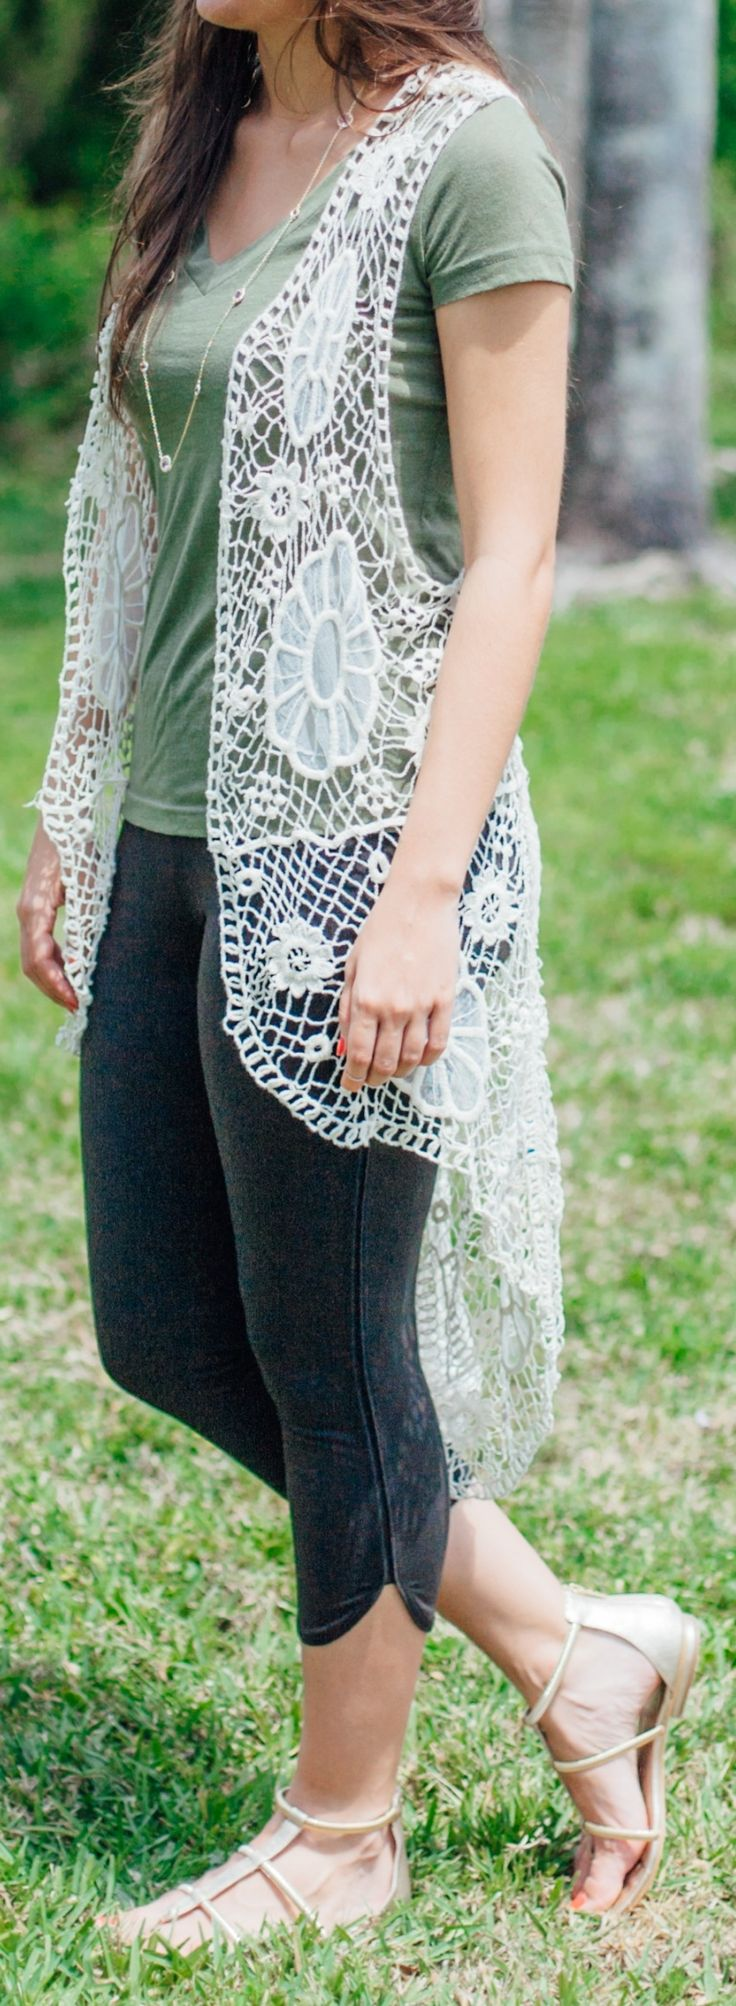 A crochet vest is a perfect lightweight layering piece to spruce up any spring/summer look! We're loving the detail on this Good+ vest! What do you think?